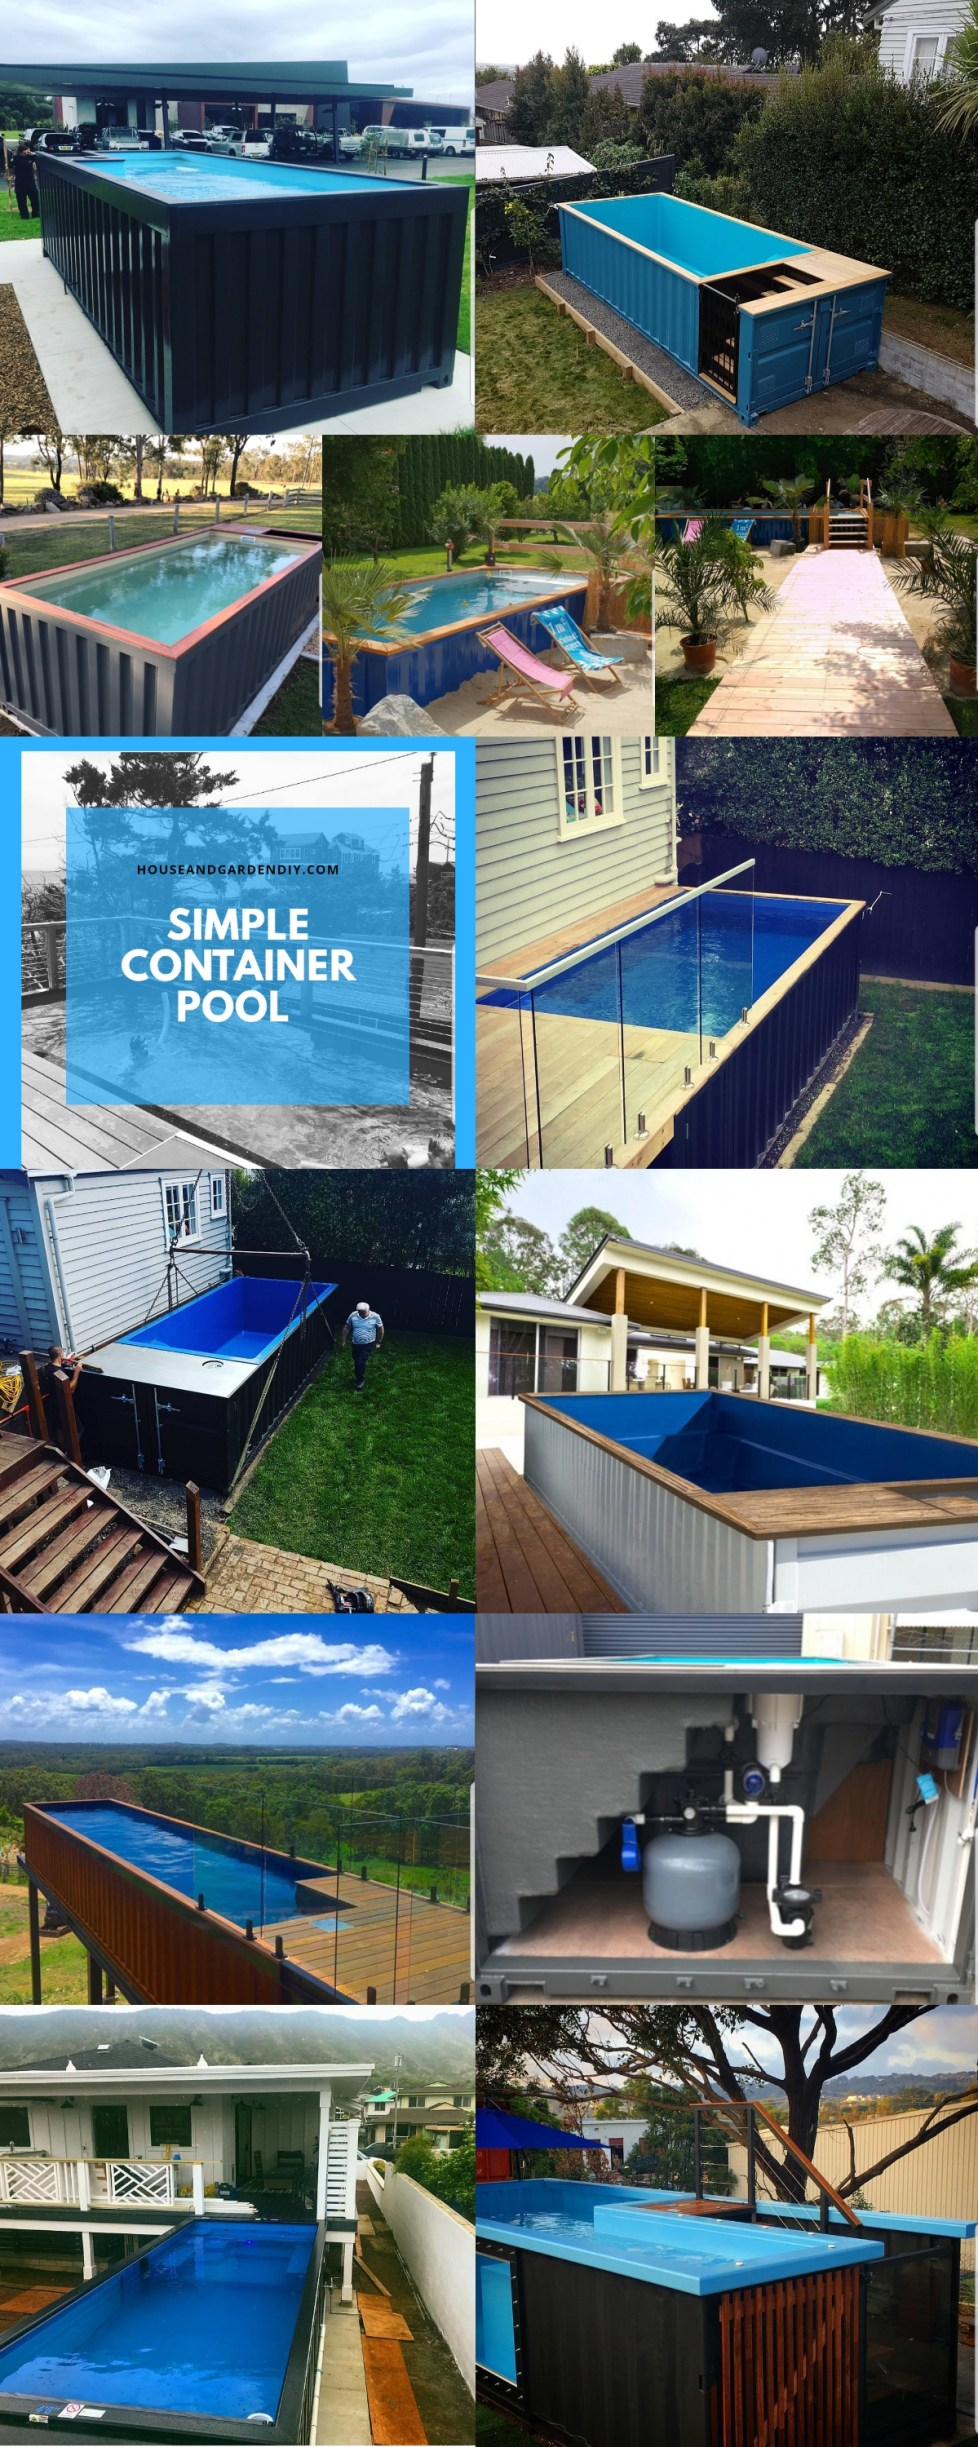 Simple Shipping Container Pool